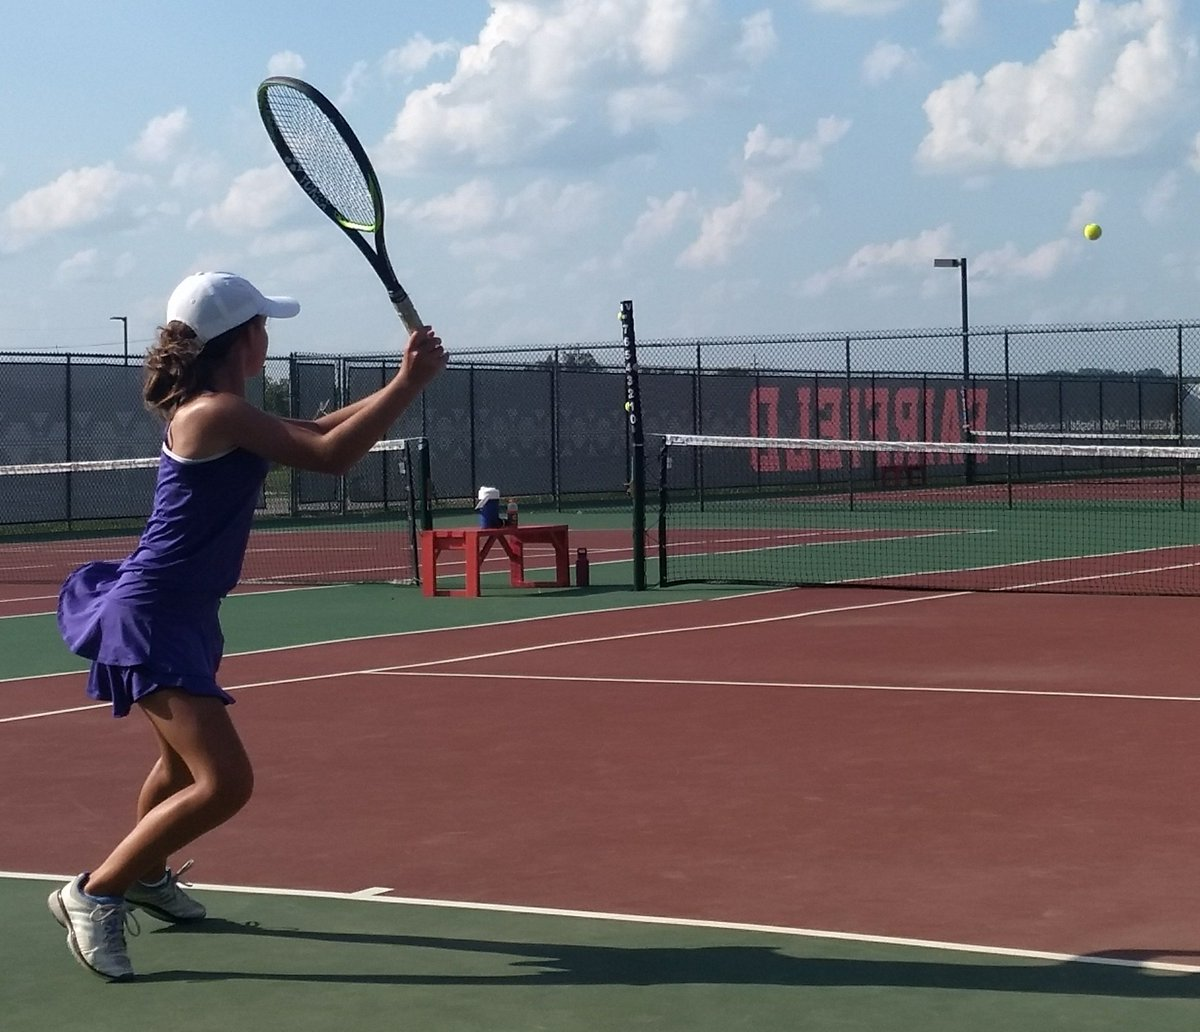 Wilson, Pearson, Patterson Earn GMC Athlete of the Week Honors for Girls' Tennis